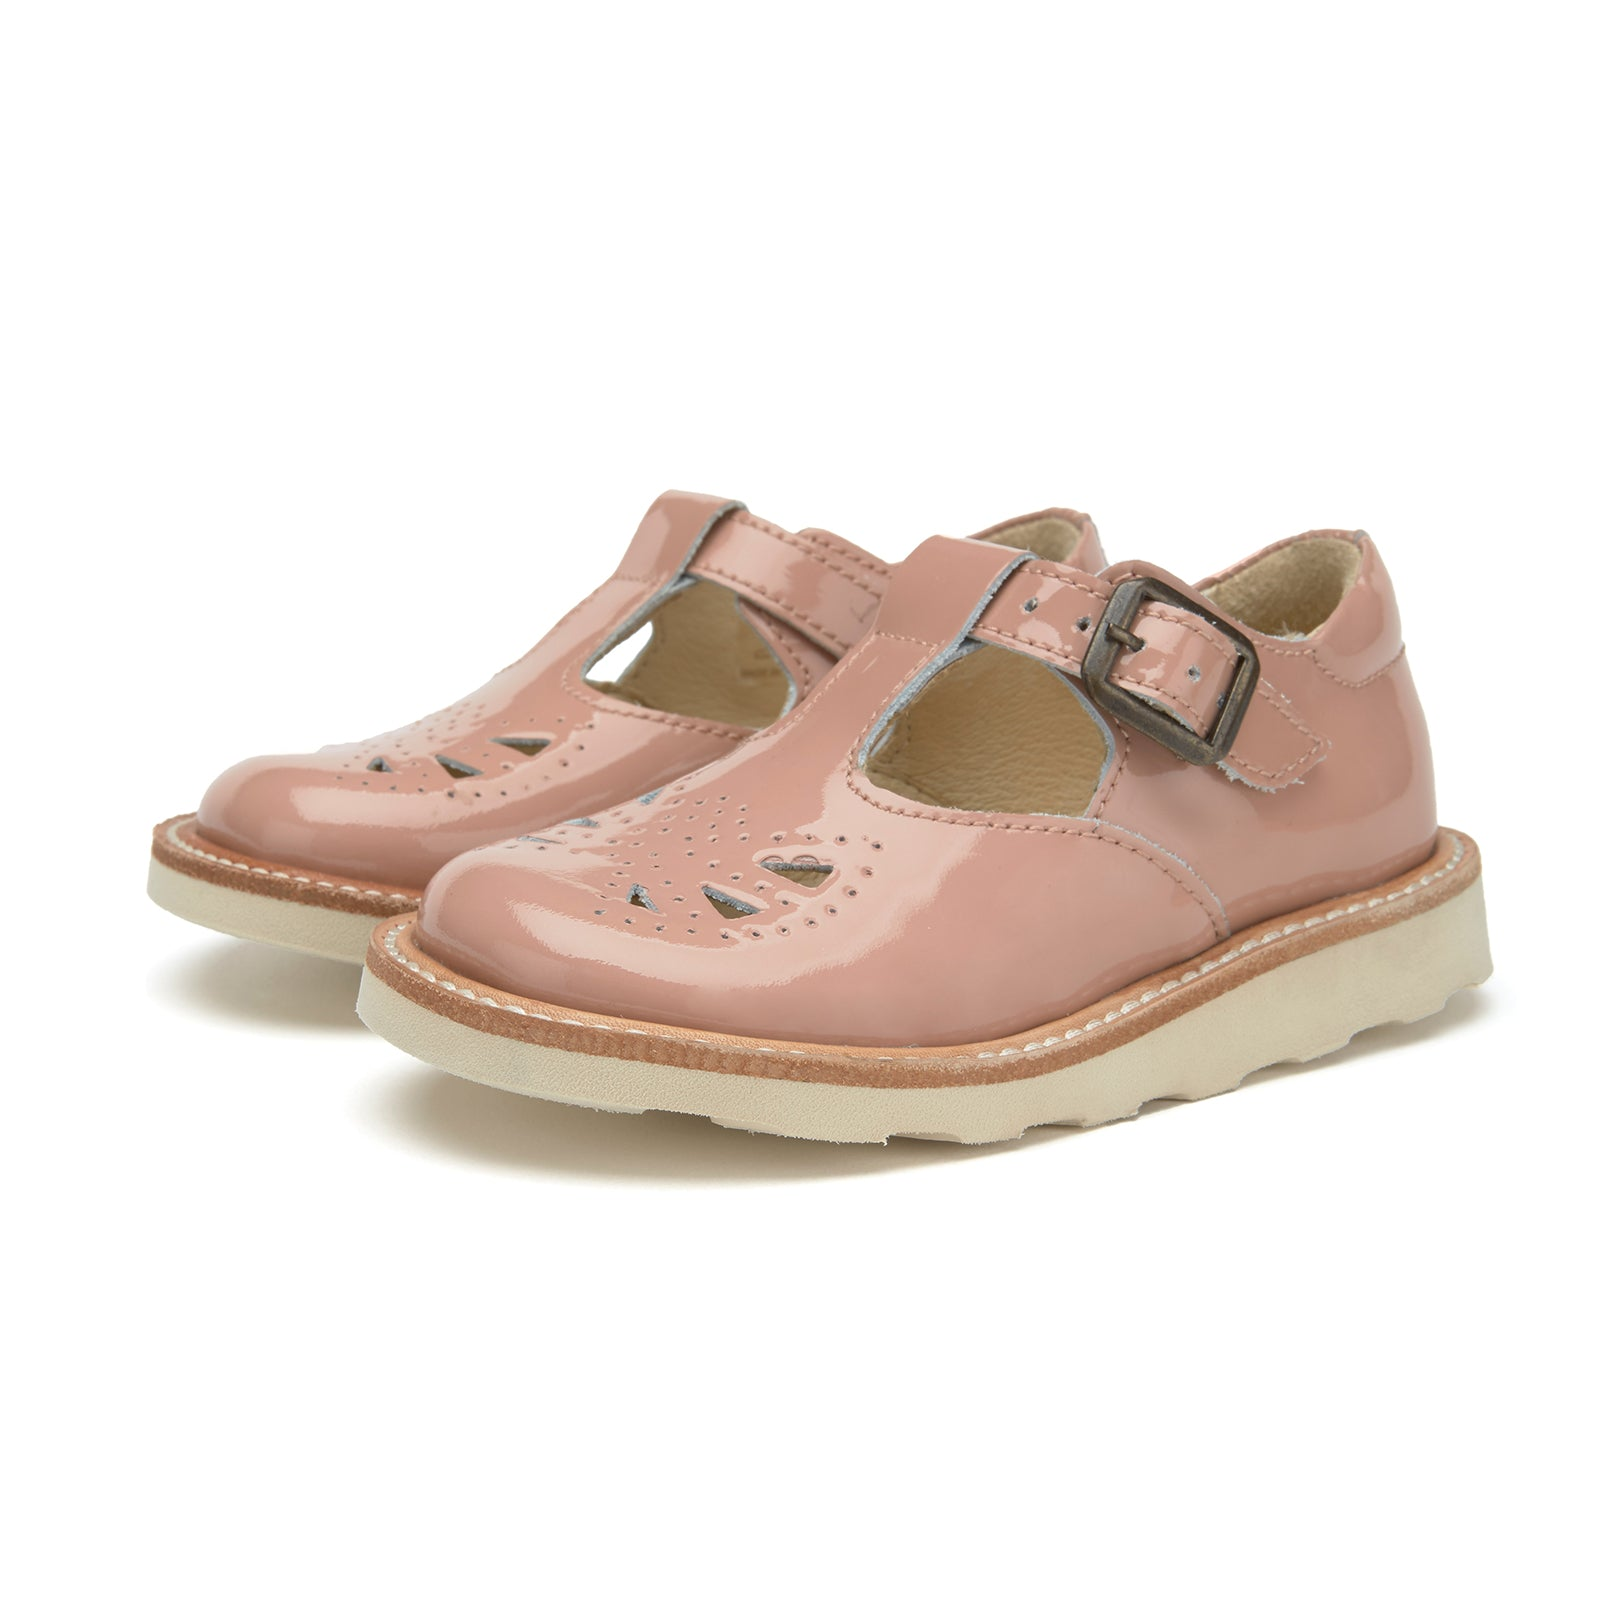 Rosie T-bar Shoe    Blush Pink Patent Leather